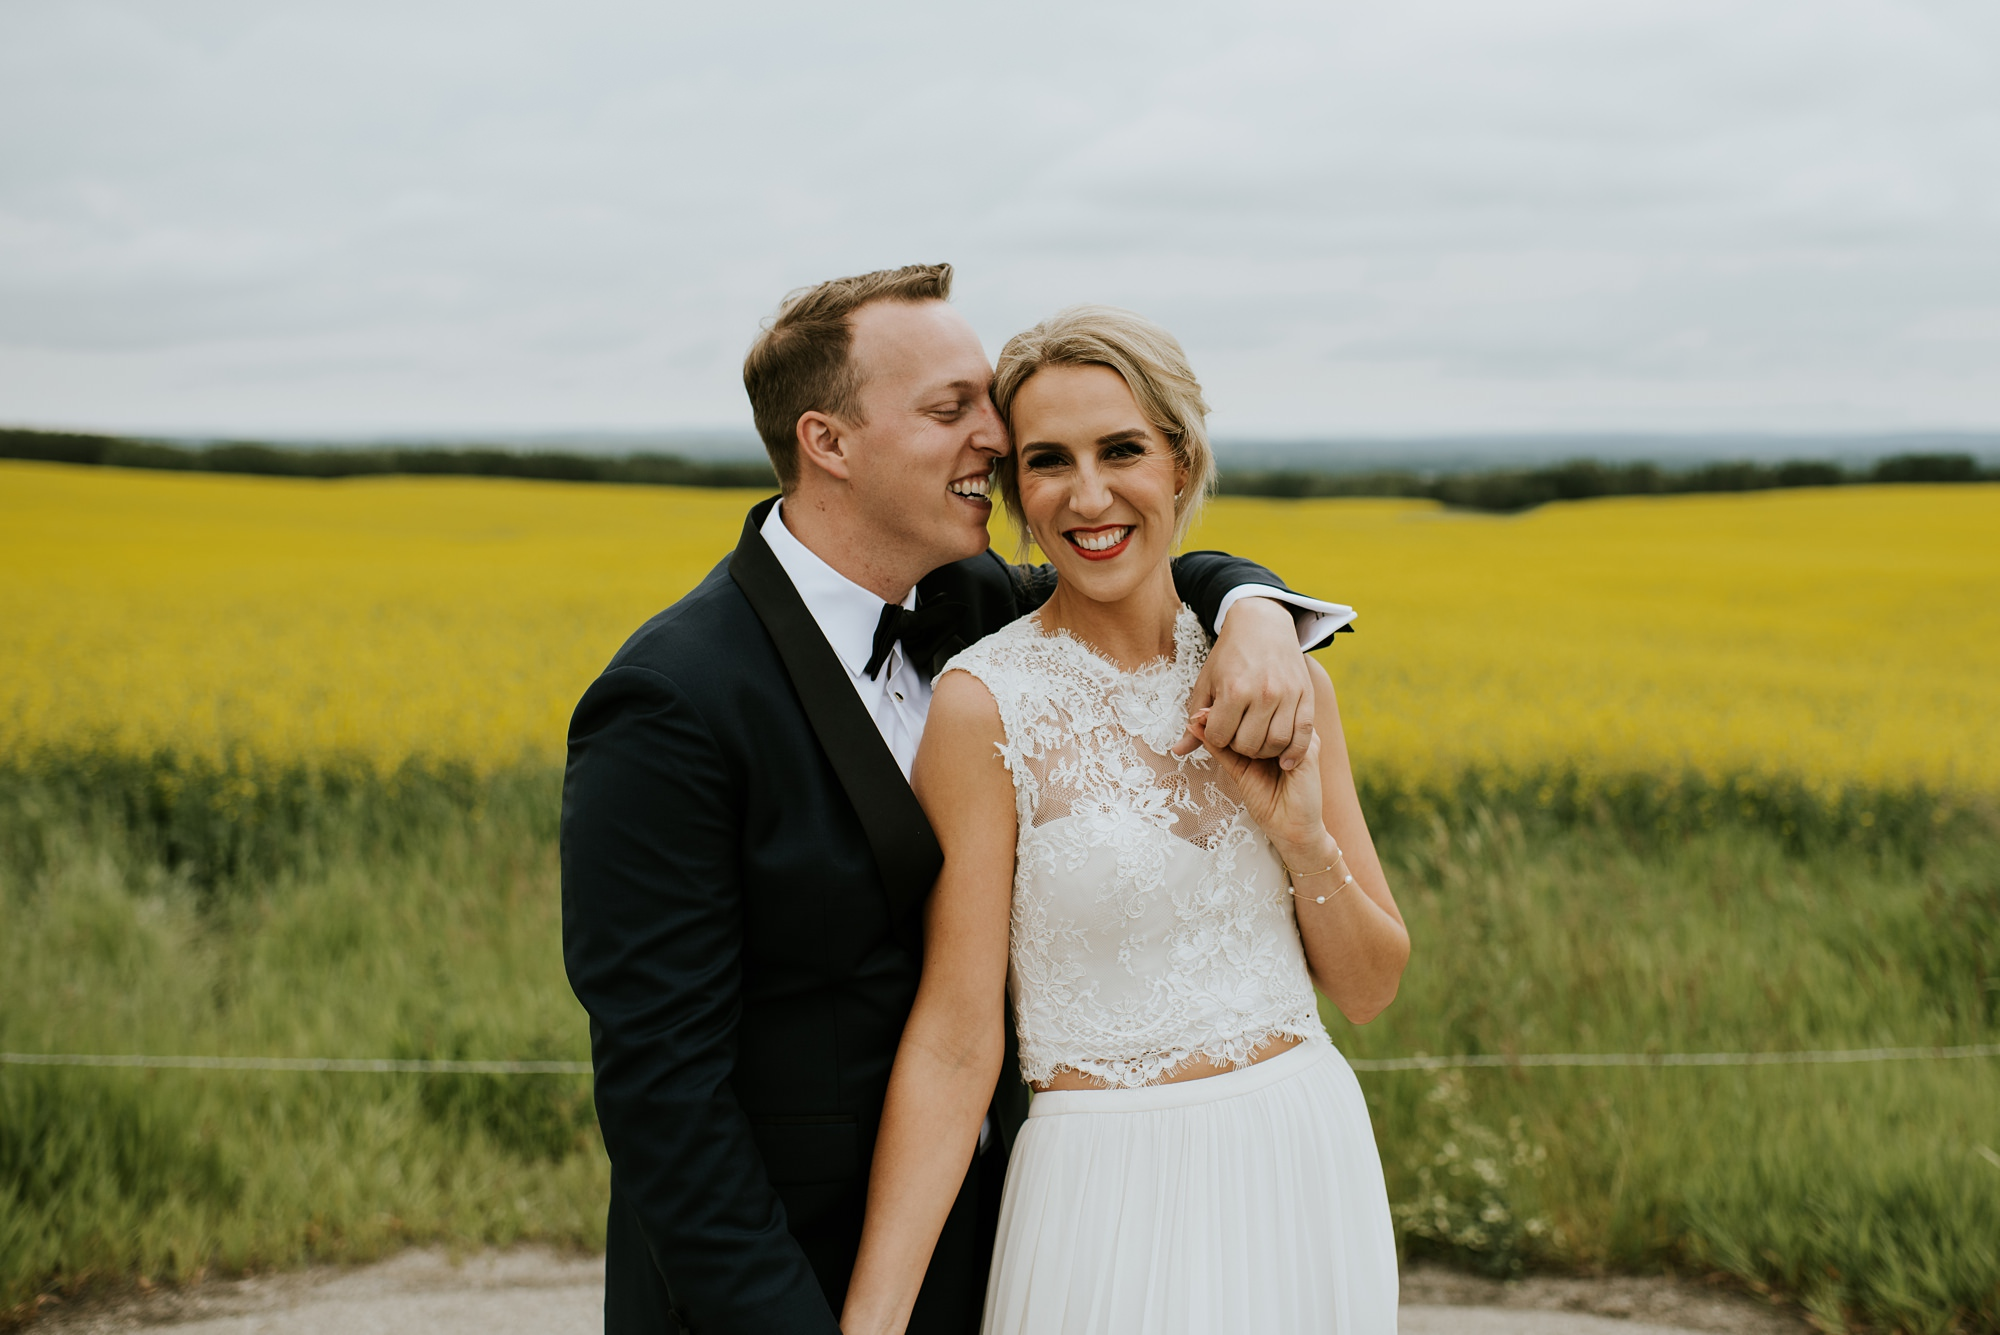 bride and groom embracing in front of canola field in alloy restaurant wedding